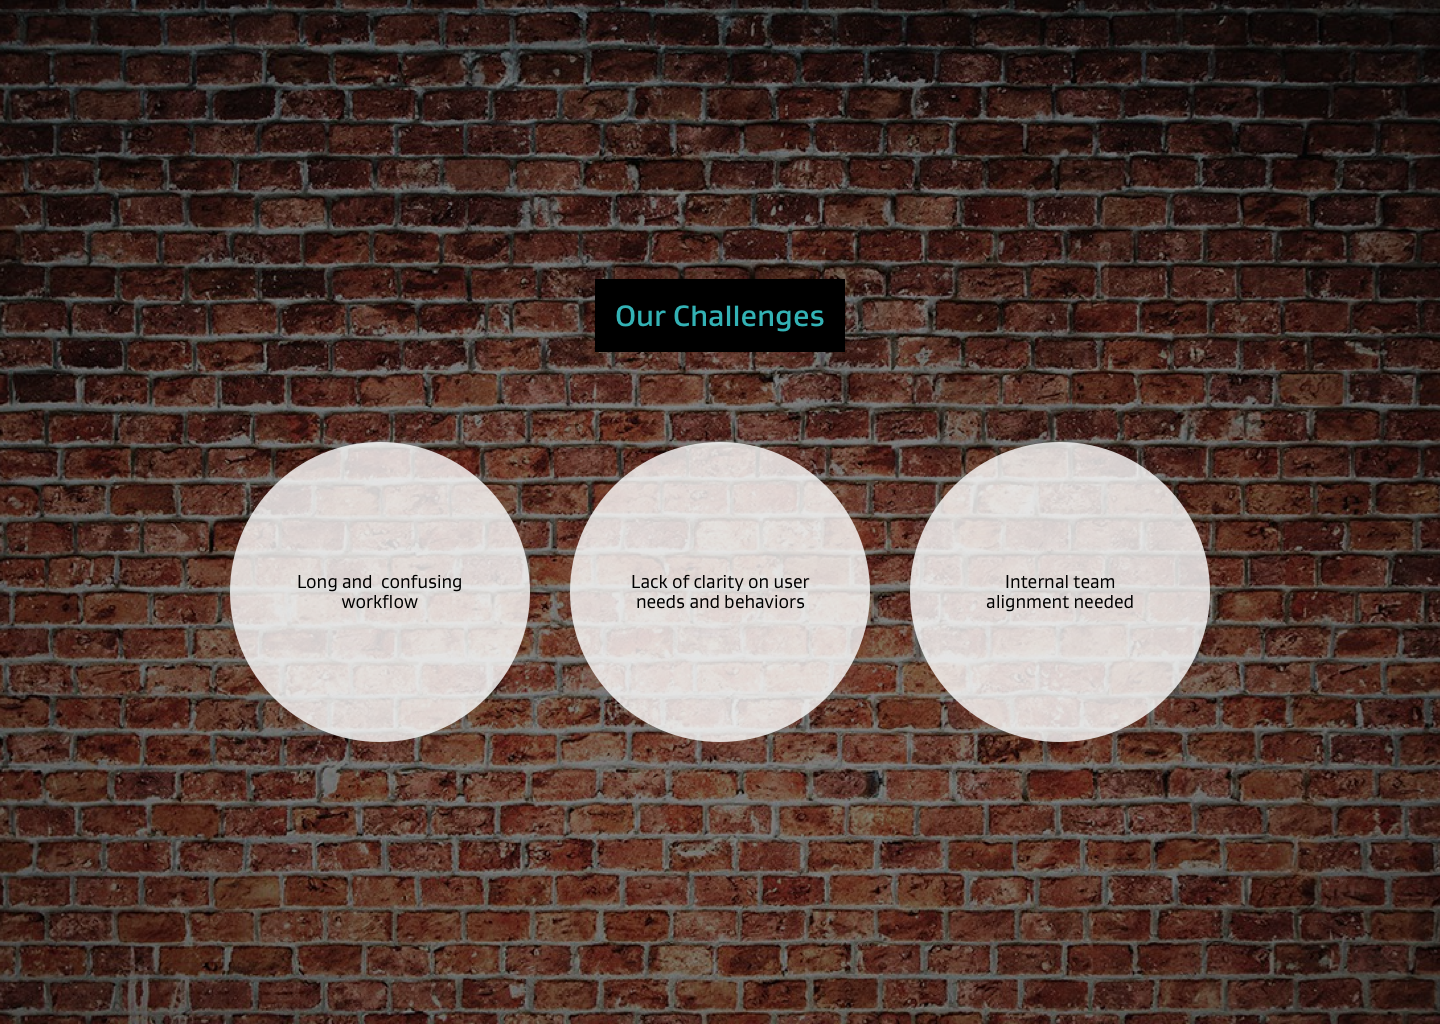 3. Our challenges